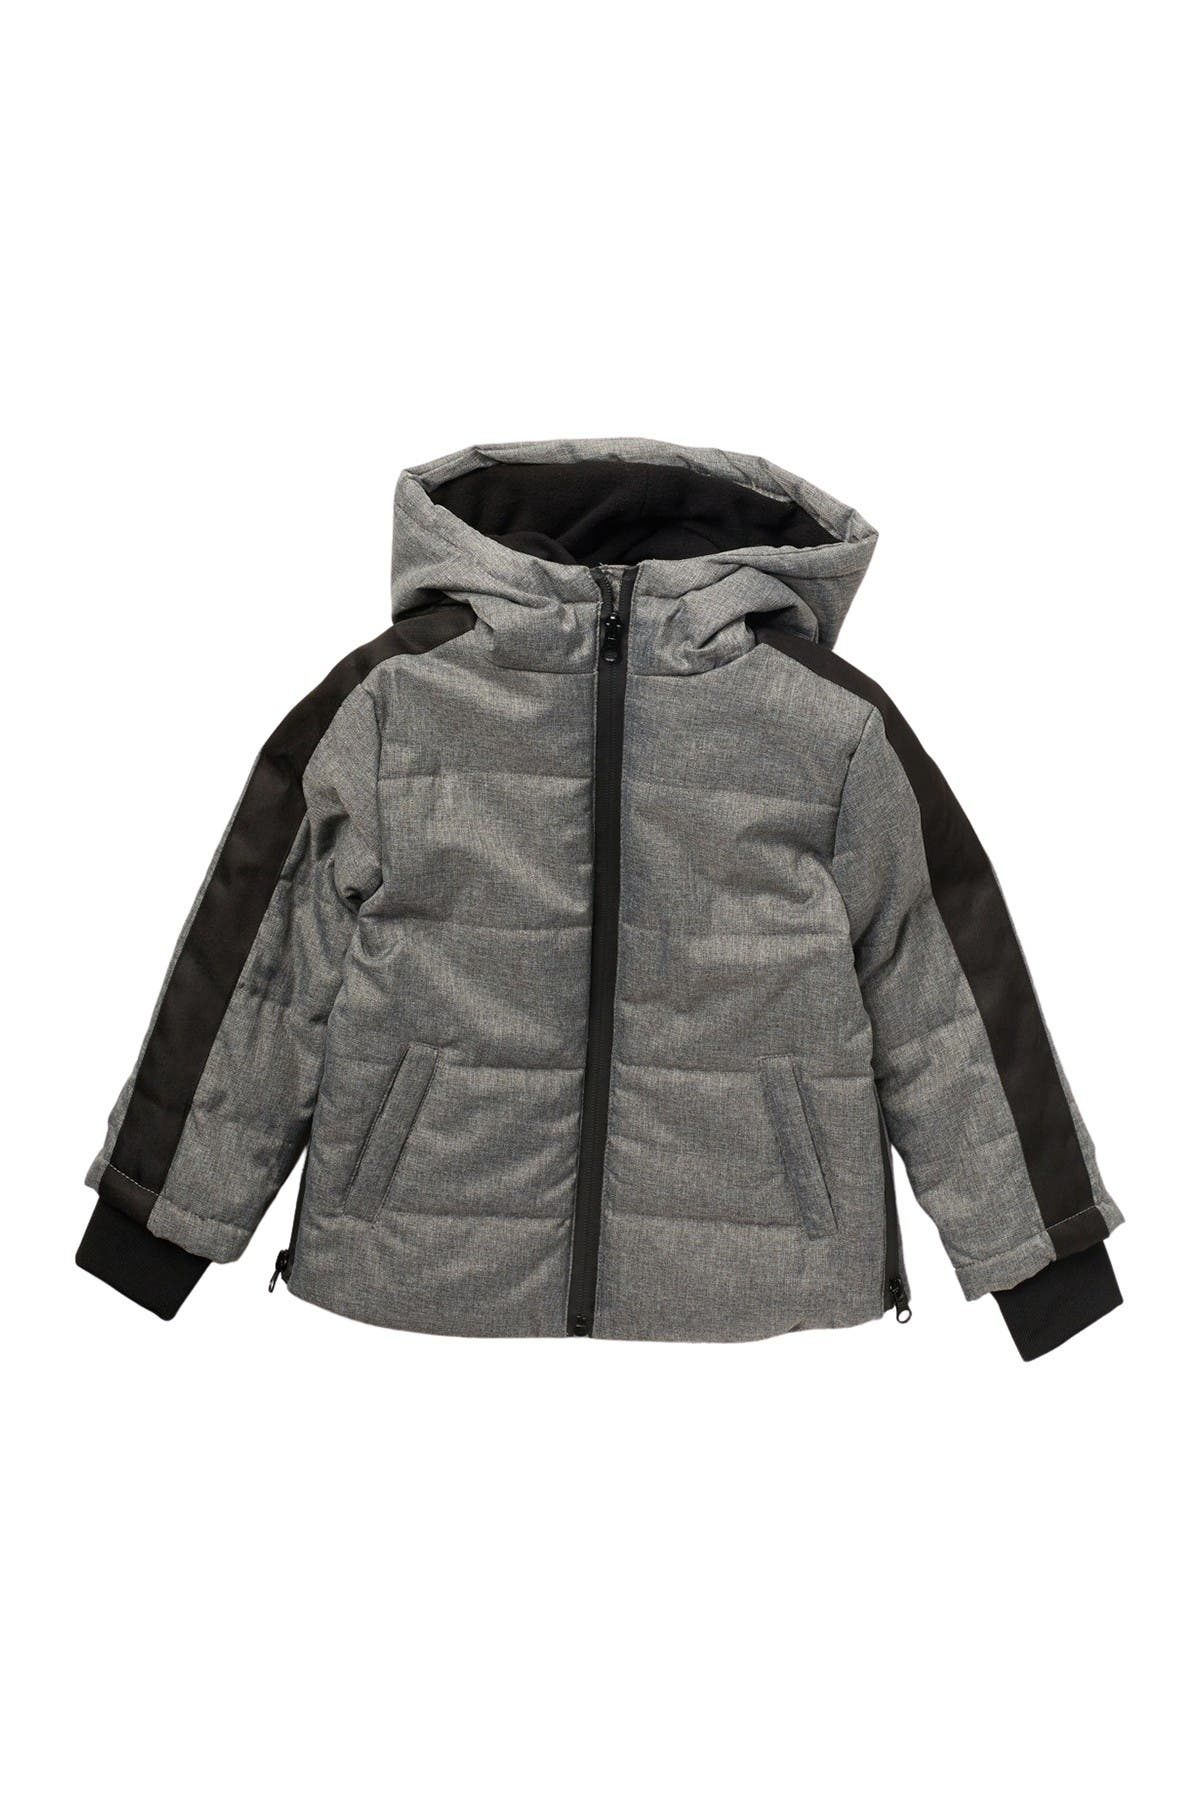 Image of Sovereign Code Primm Puffer Jacket